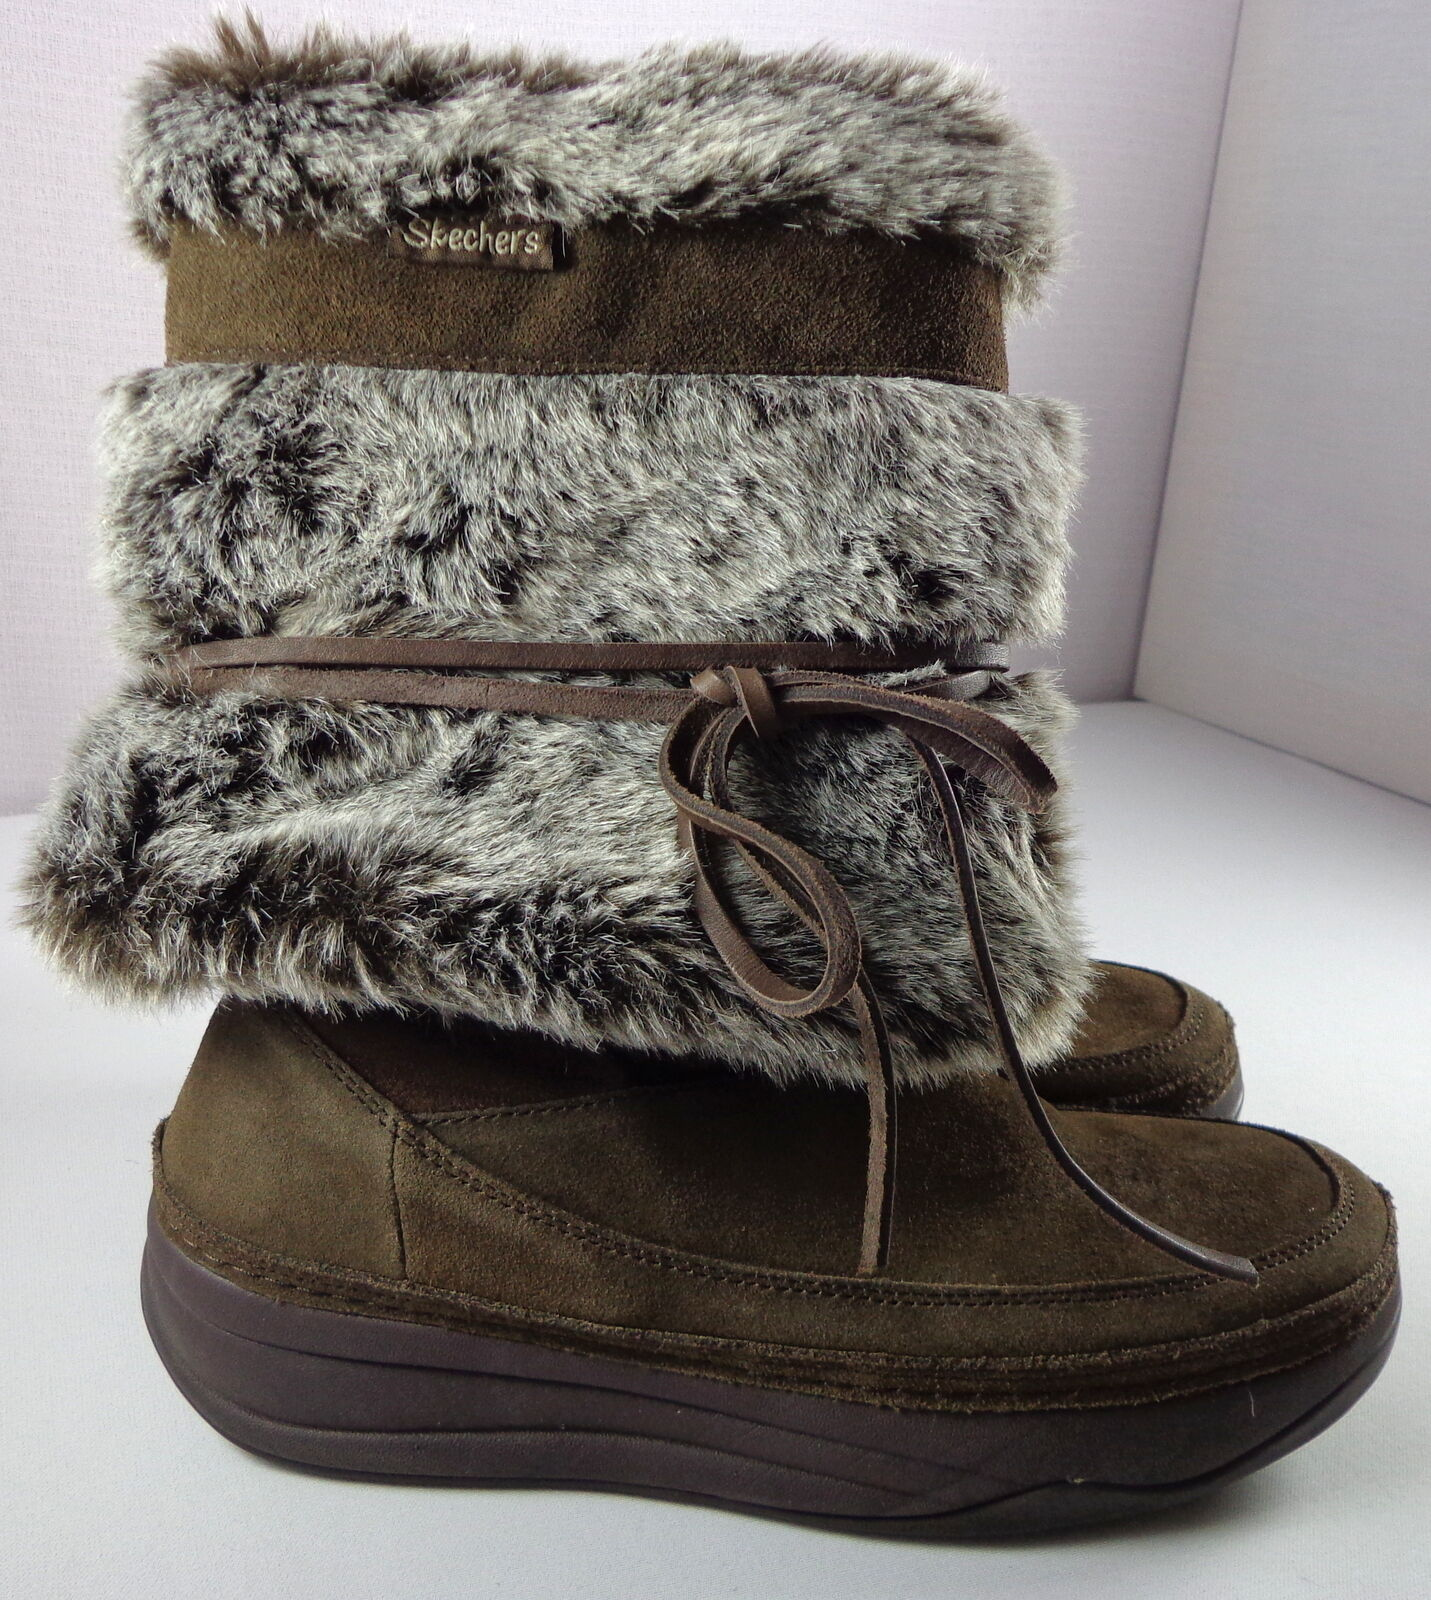 Skechers Tone-Ups Tone-Ups Tone-Ups Boots Womens Brown Mid-Calf Faux Fur Pull On shoes Size 7 1ec154